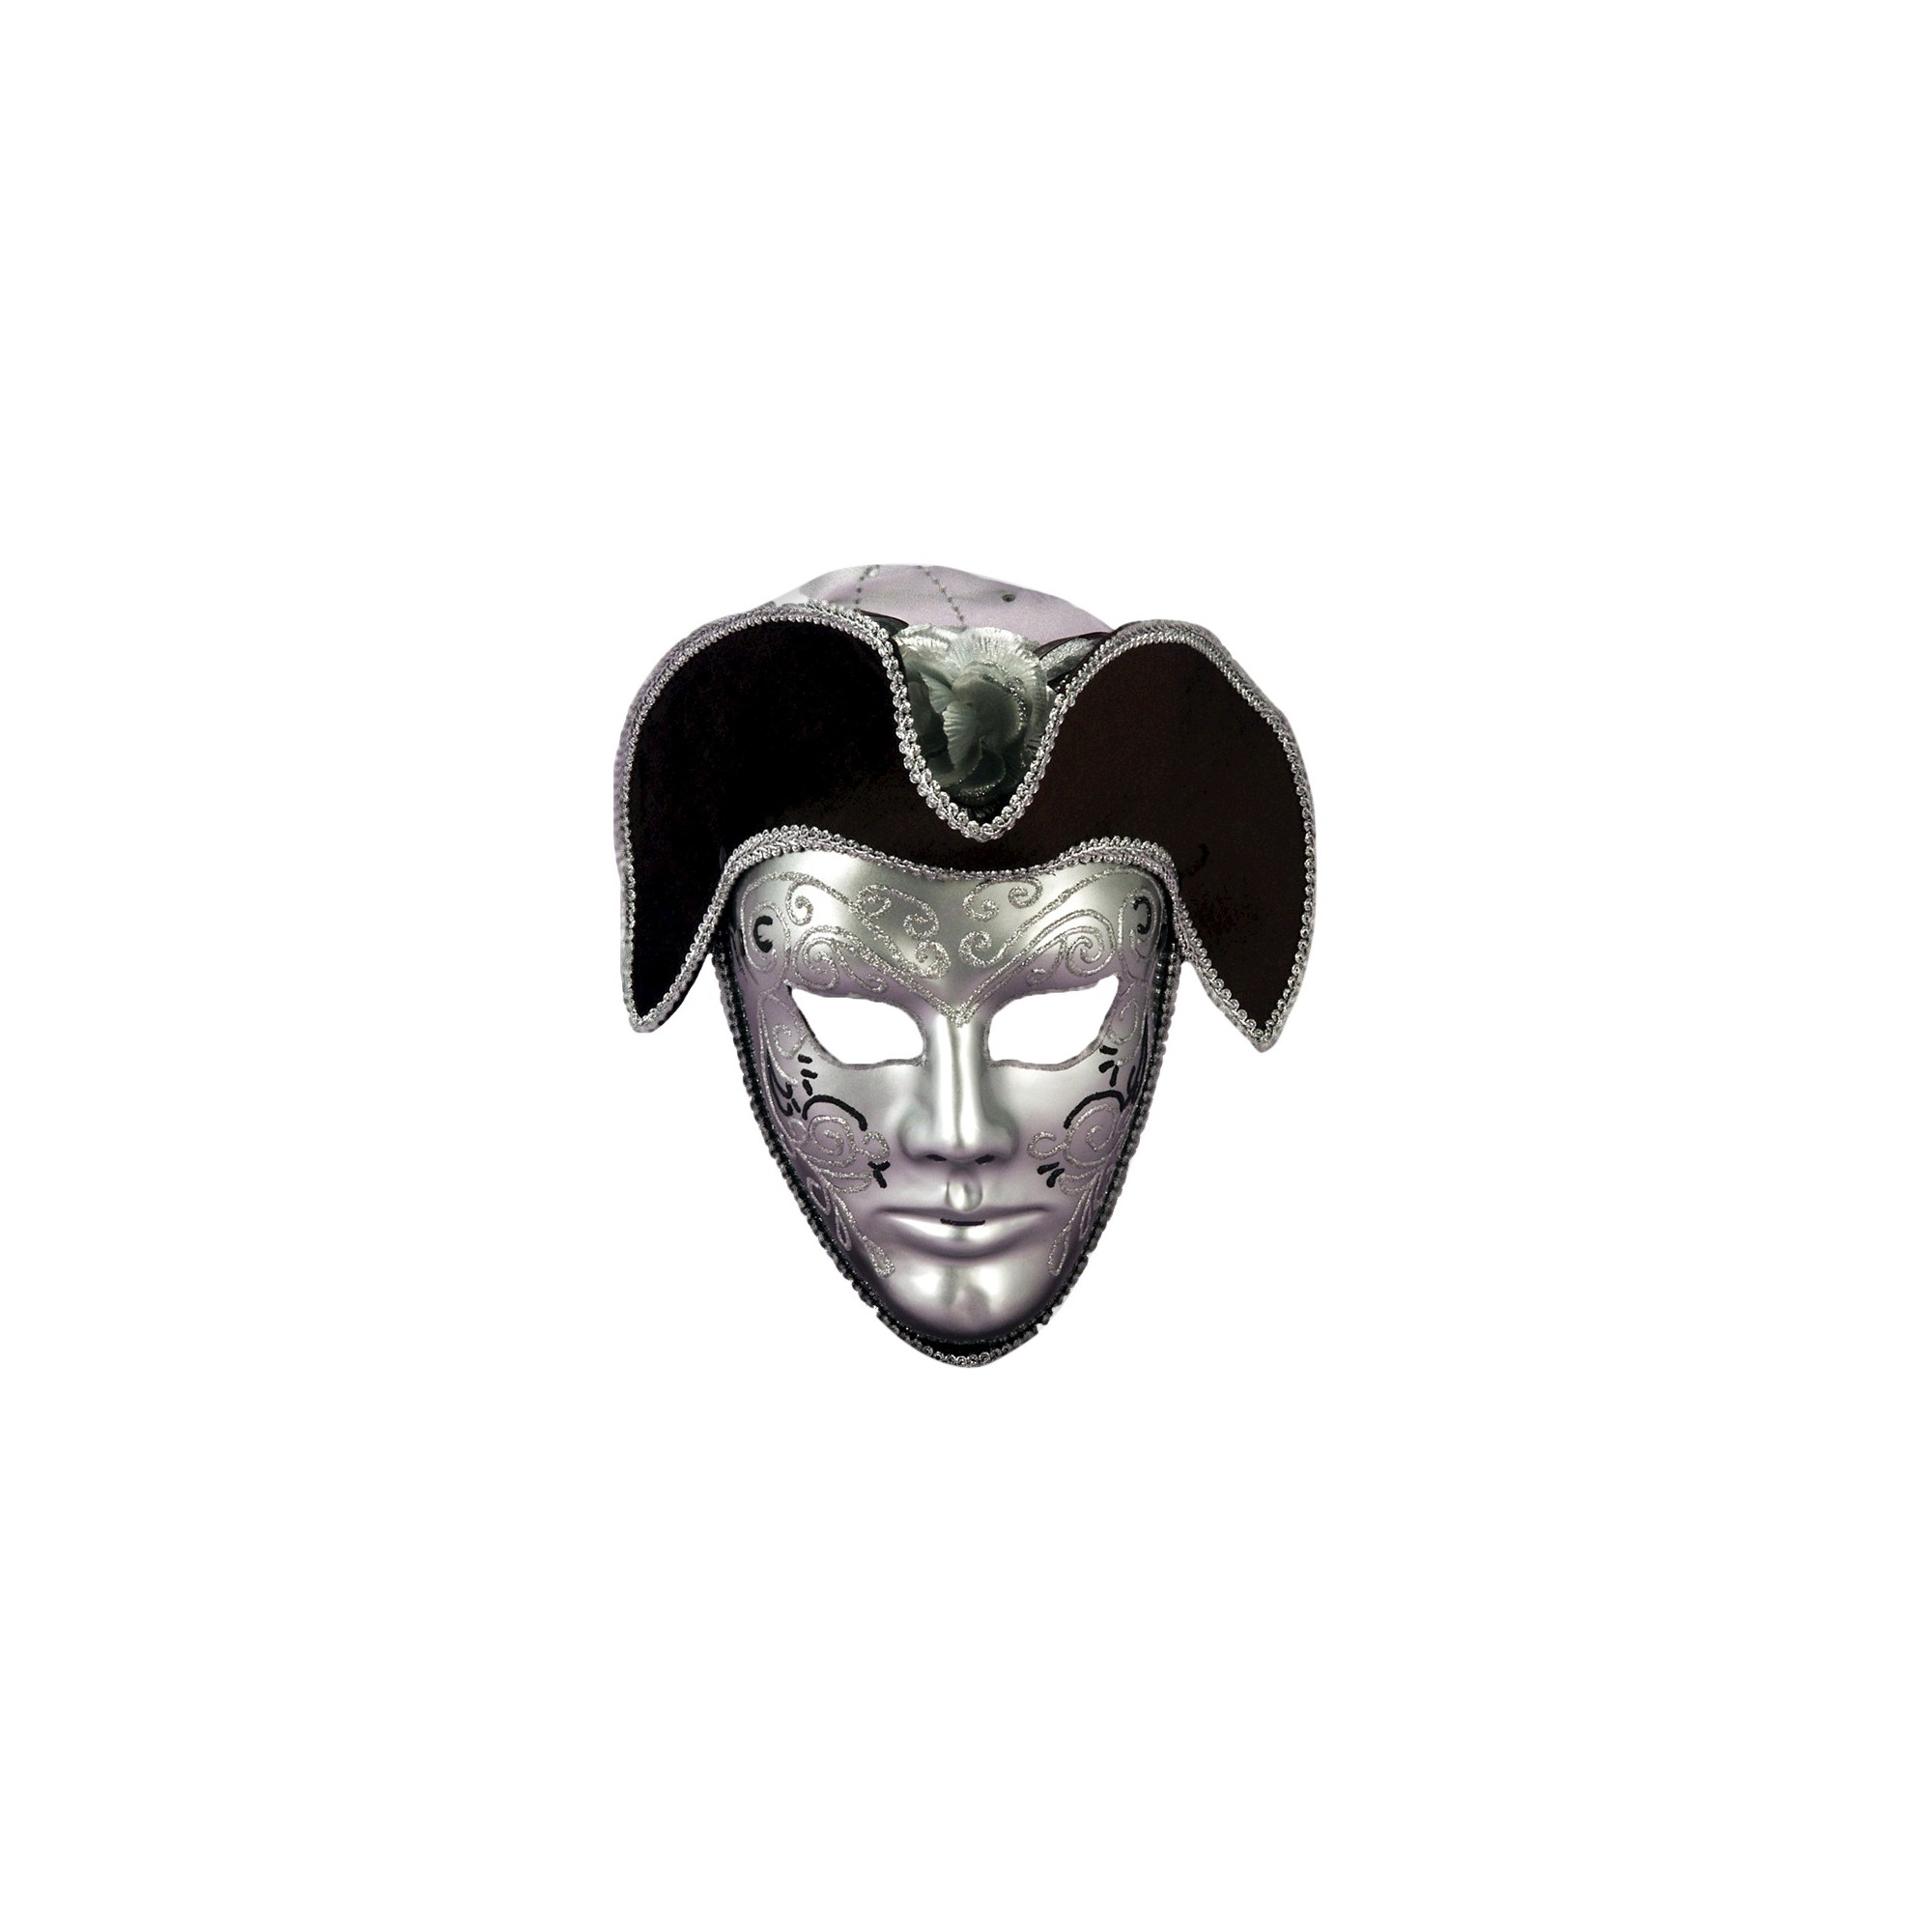 Adult Venetian Mask with Headpiece Silver, Men's